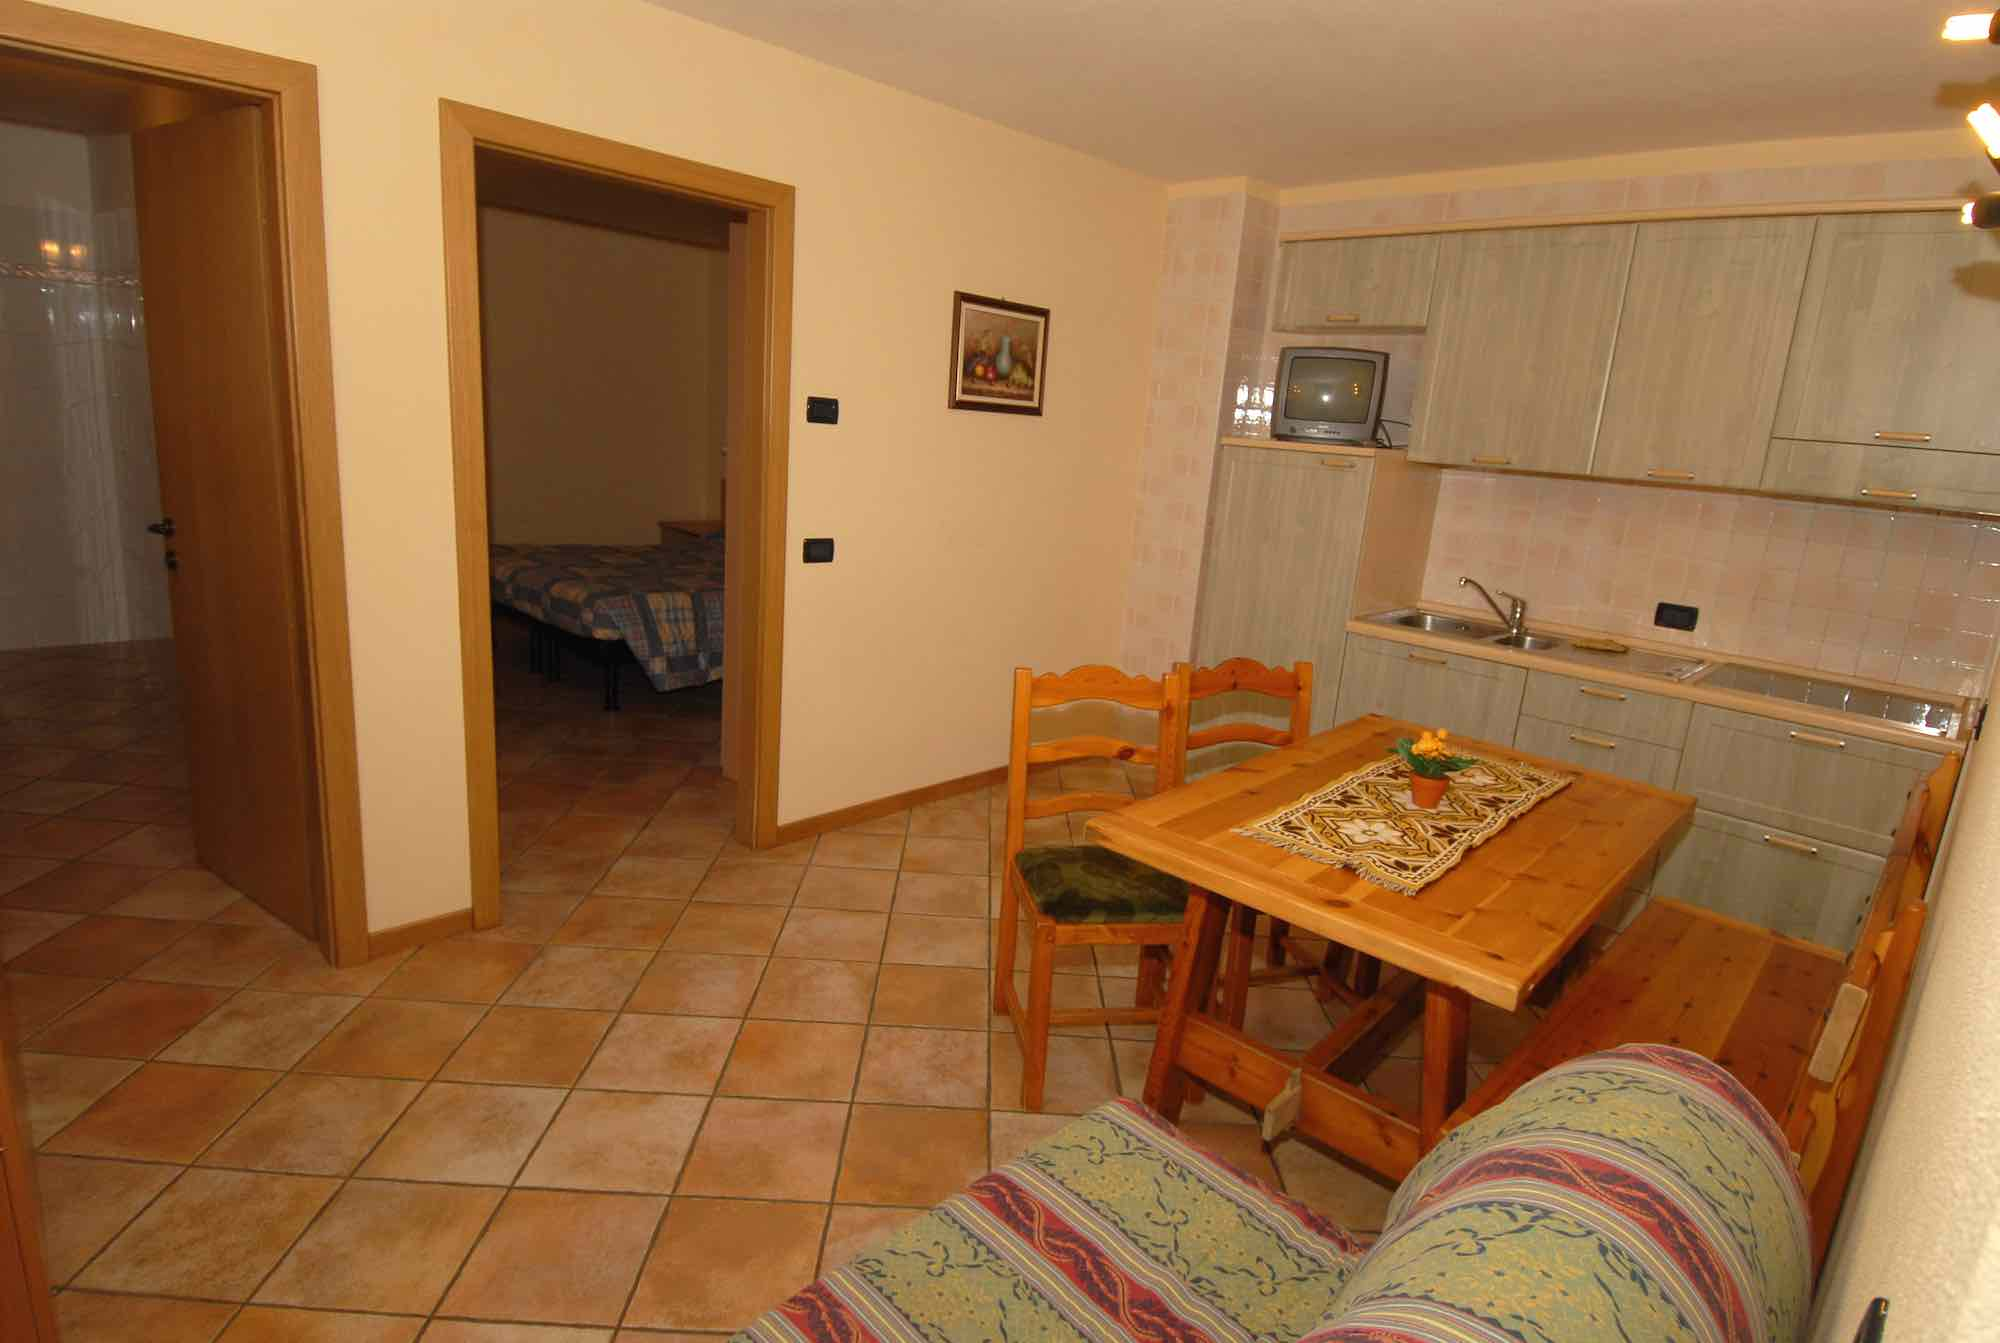 Baita Guana - Via Borch N.800, Livigno 23041 - Apartment - Taverna X2a 2